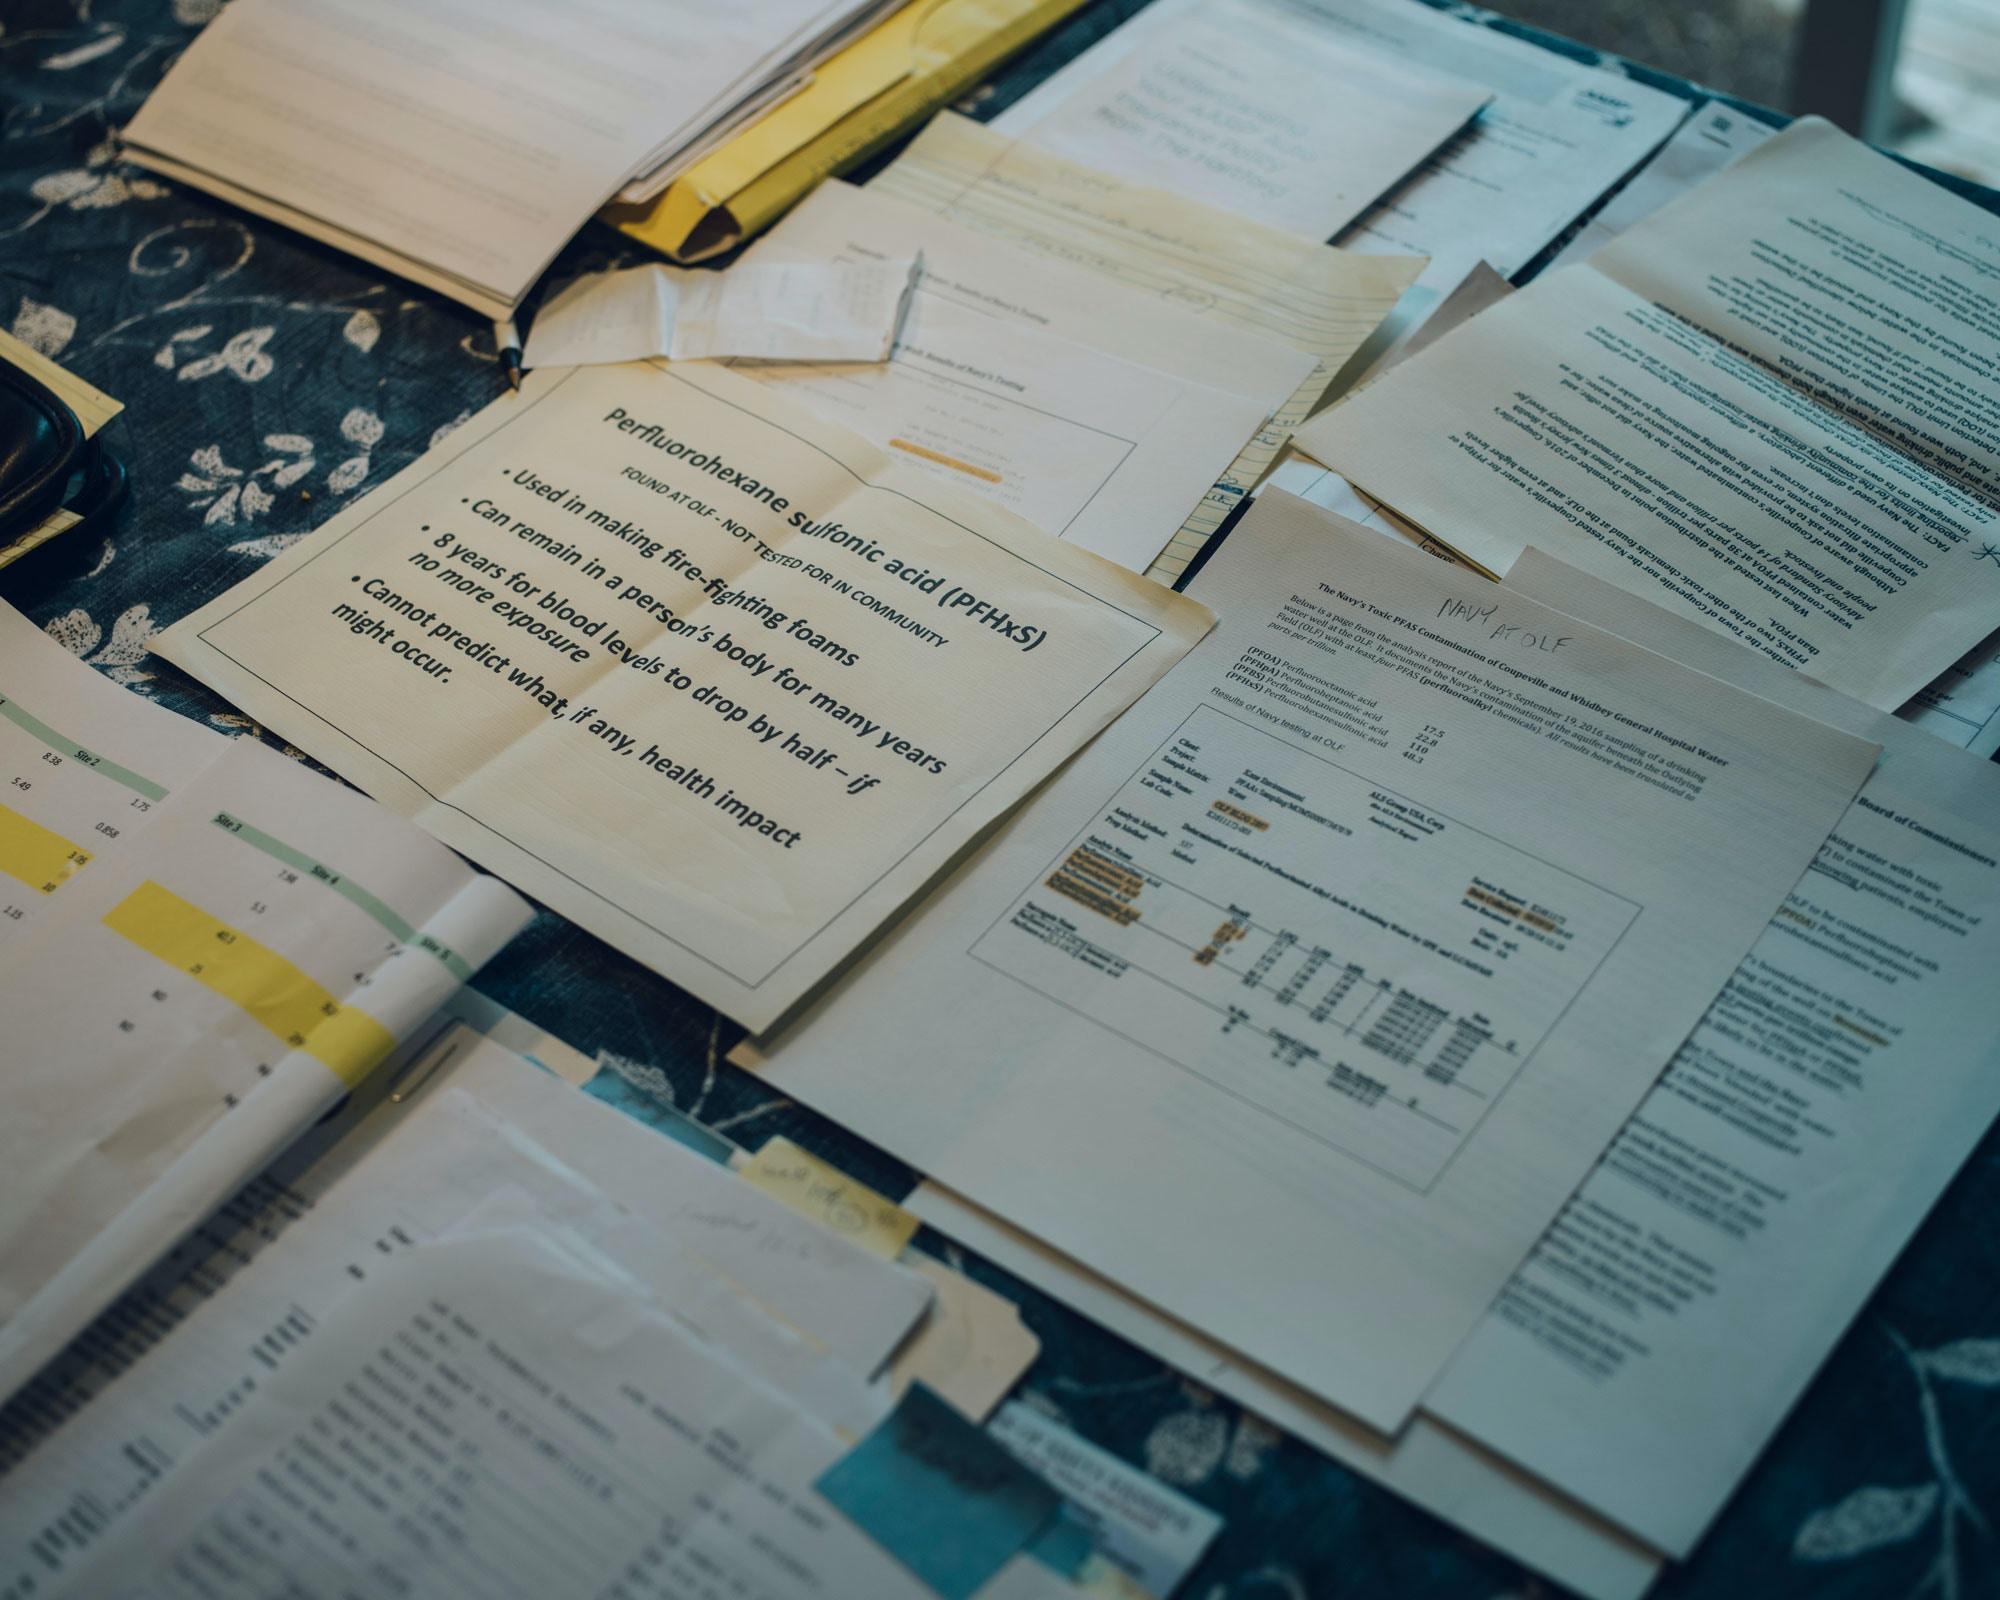 Test papers and information sit on Richard Abraham's desk in his home in Greenbank on Whidbey Island, Washington on July 13, 2017.